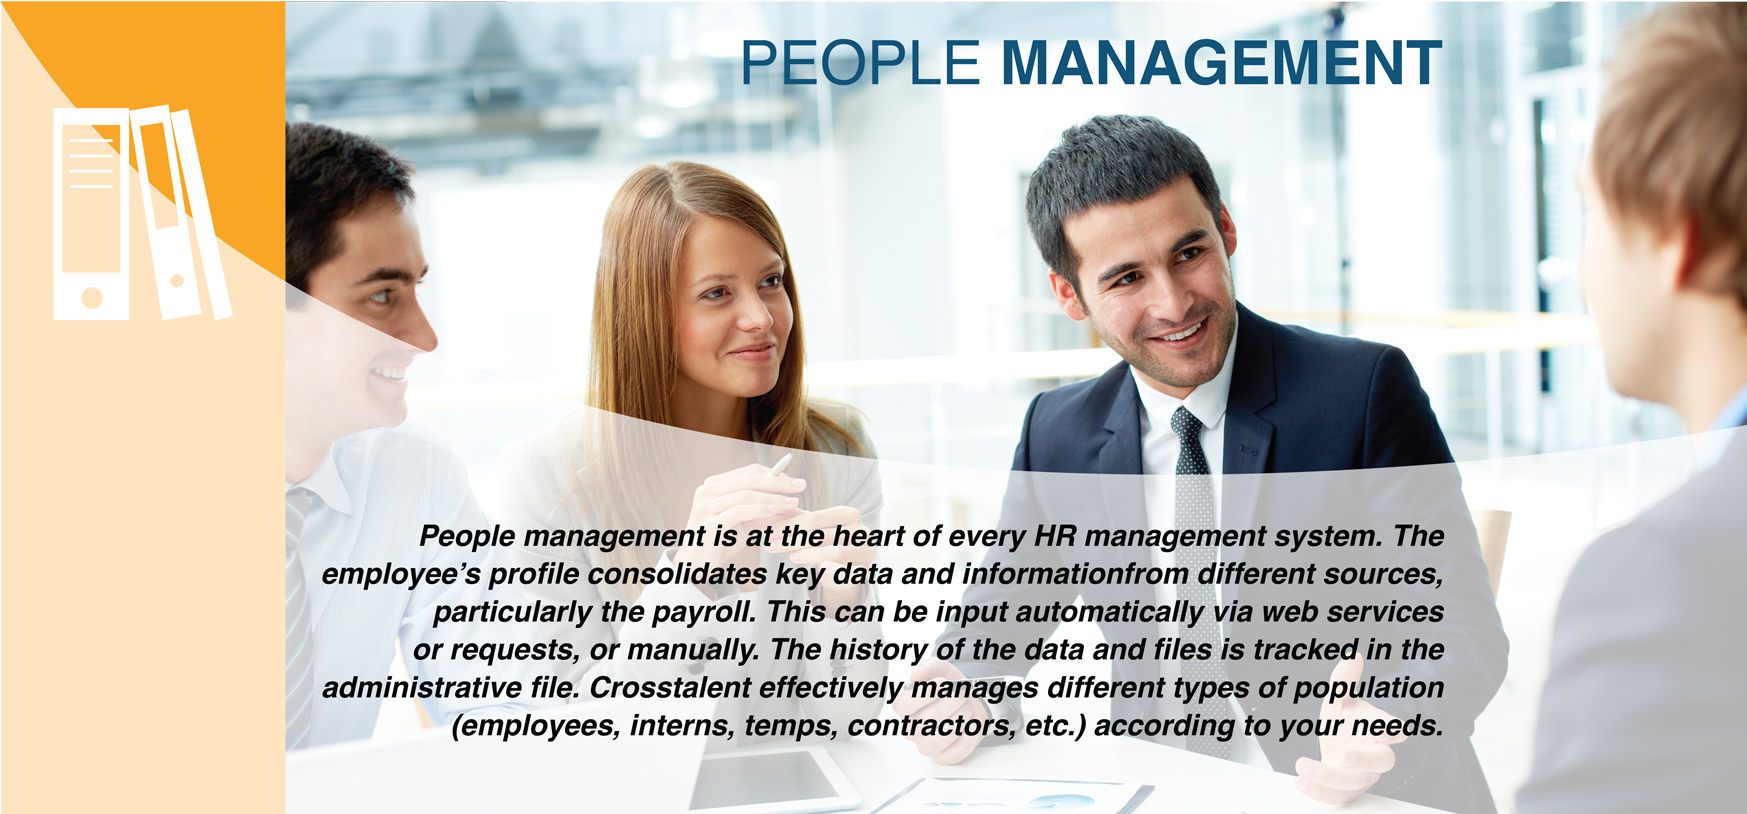 BANNER PEOPLE MANAGEMENT